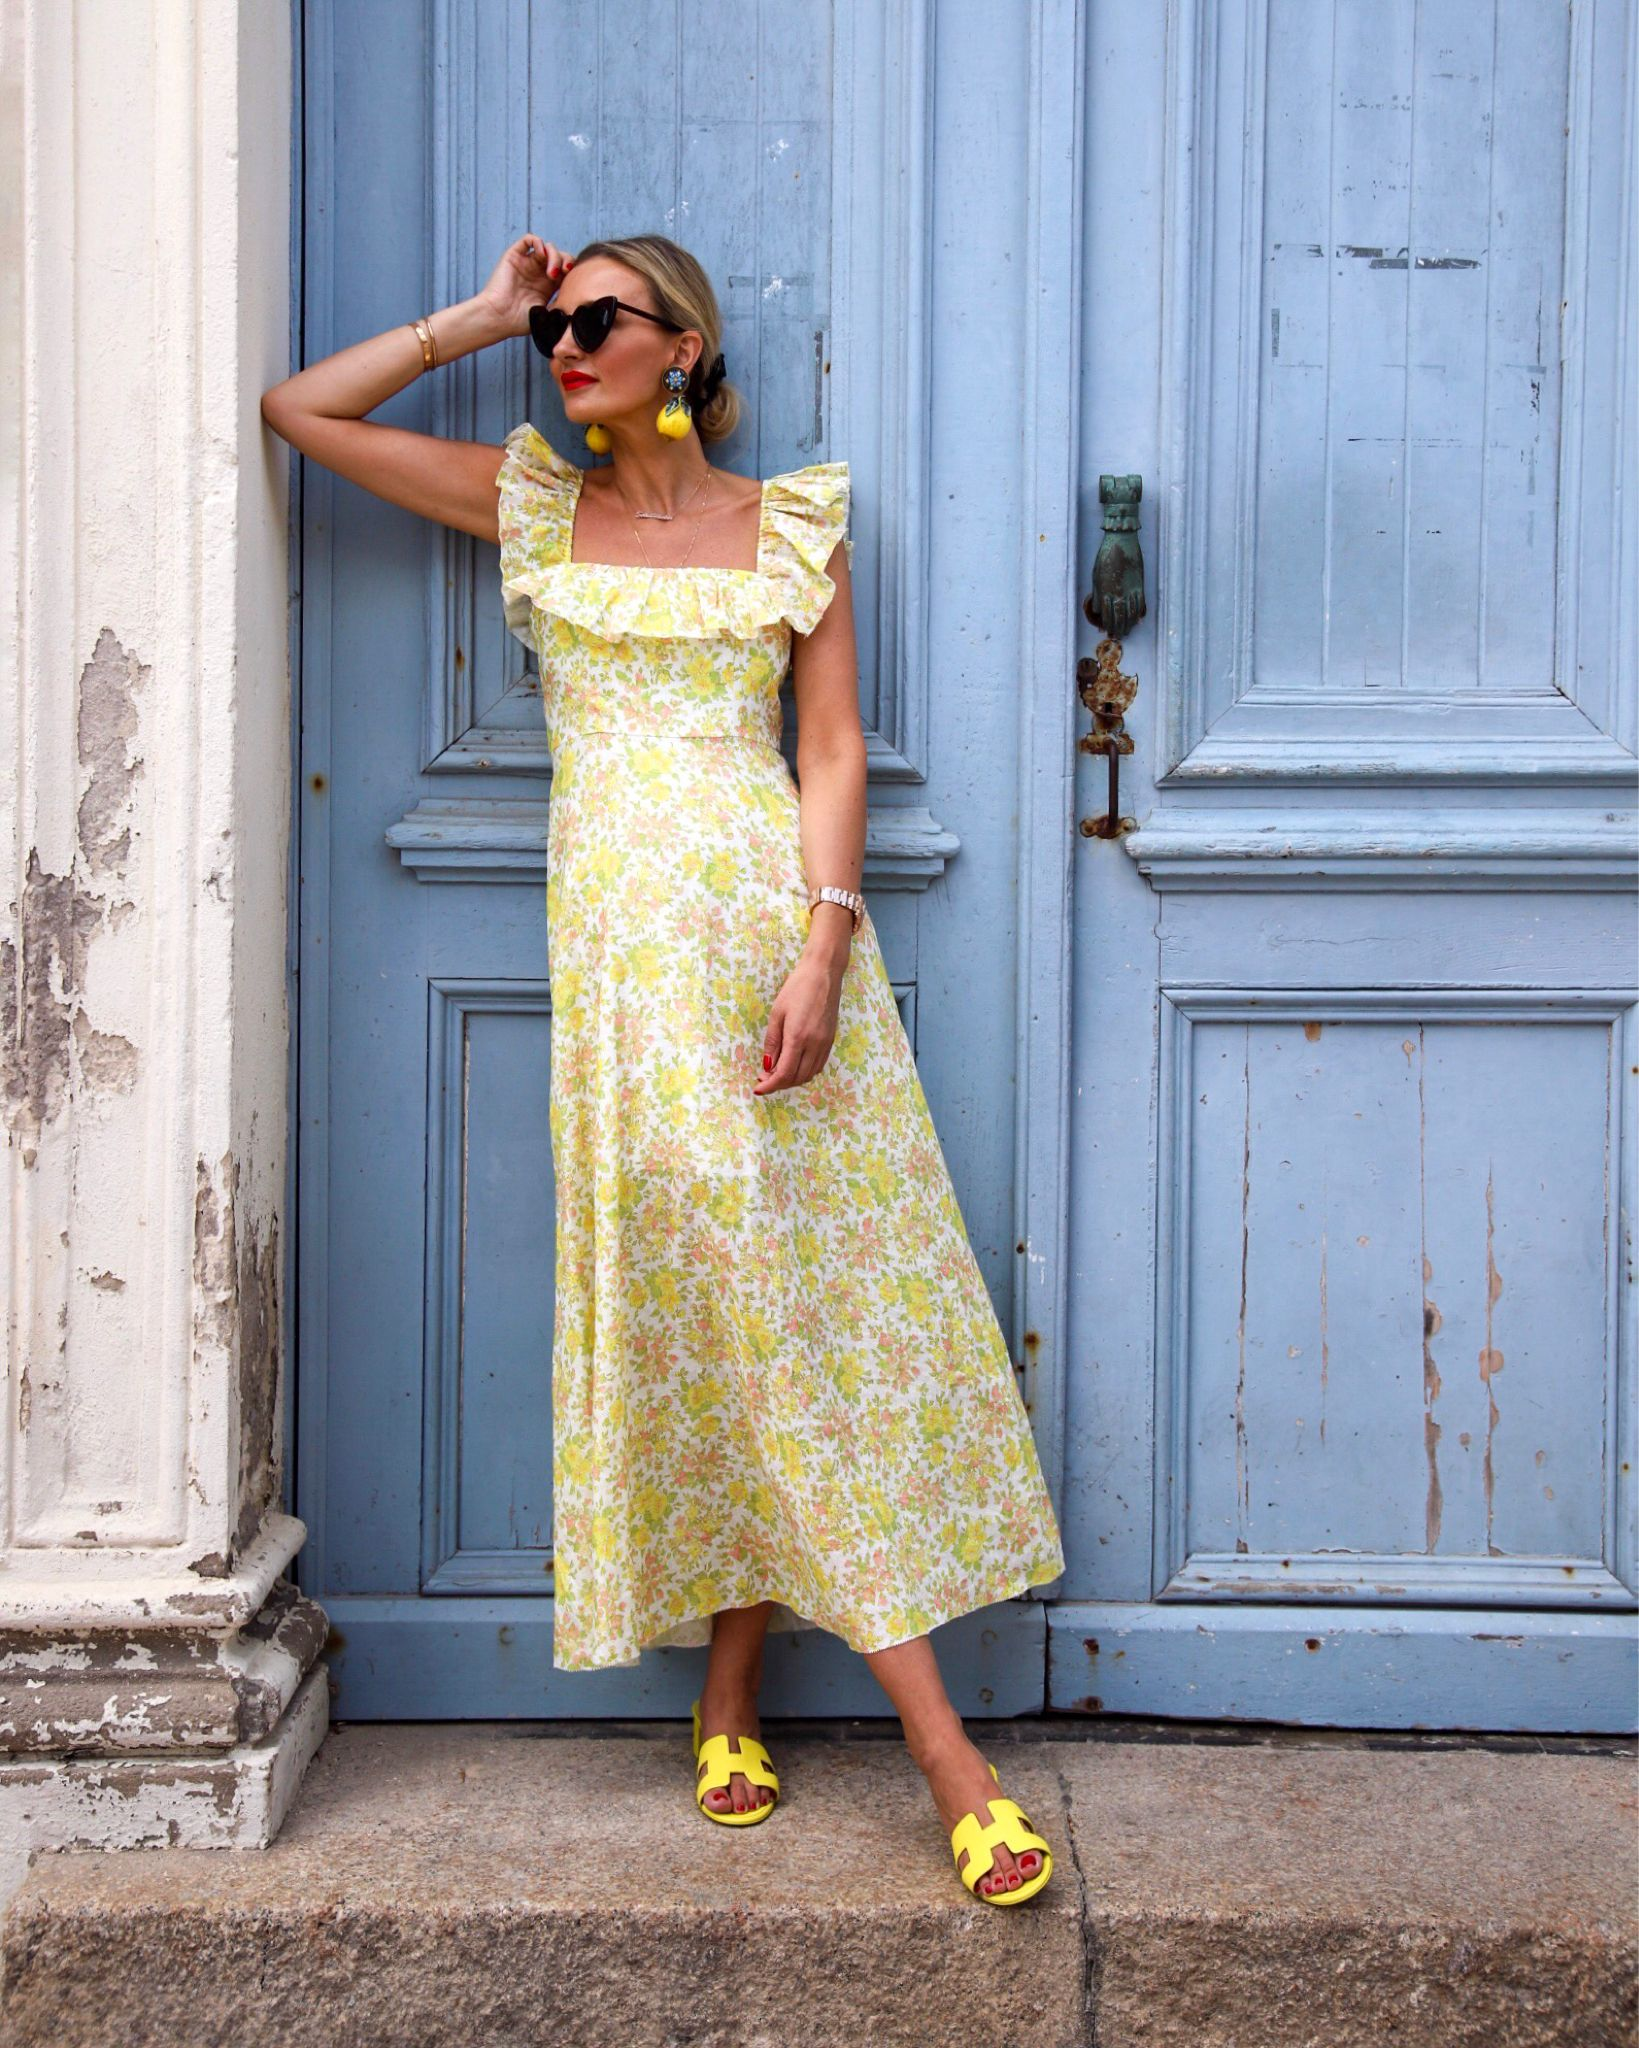 Vacation Outfit Inspo A Line Long Dress Italian Outfit Blue Flower Print Dress [ 2048 x 1639 Pixel ]